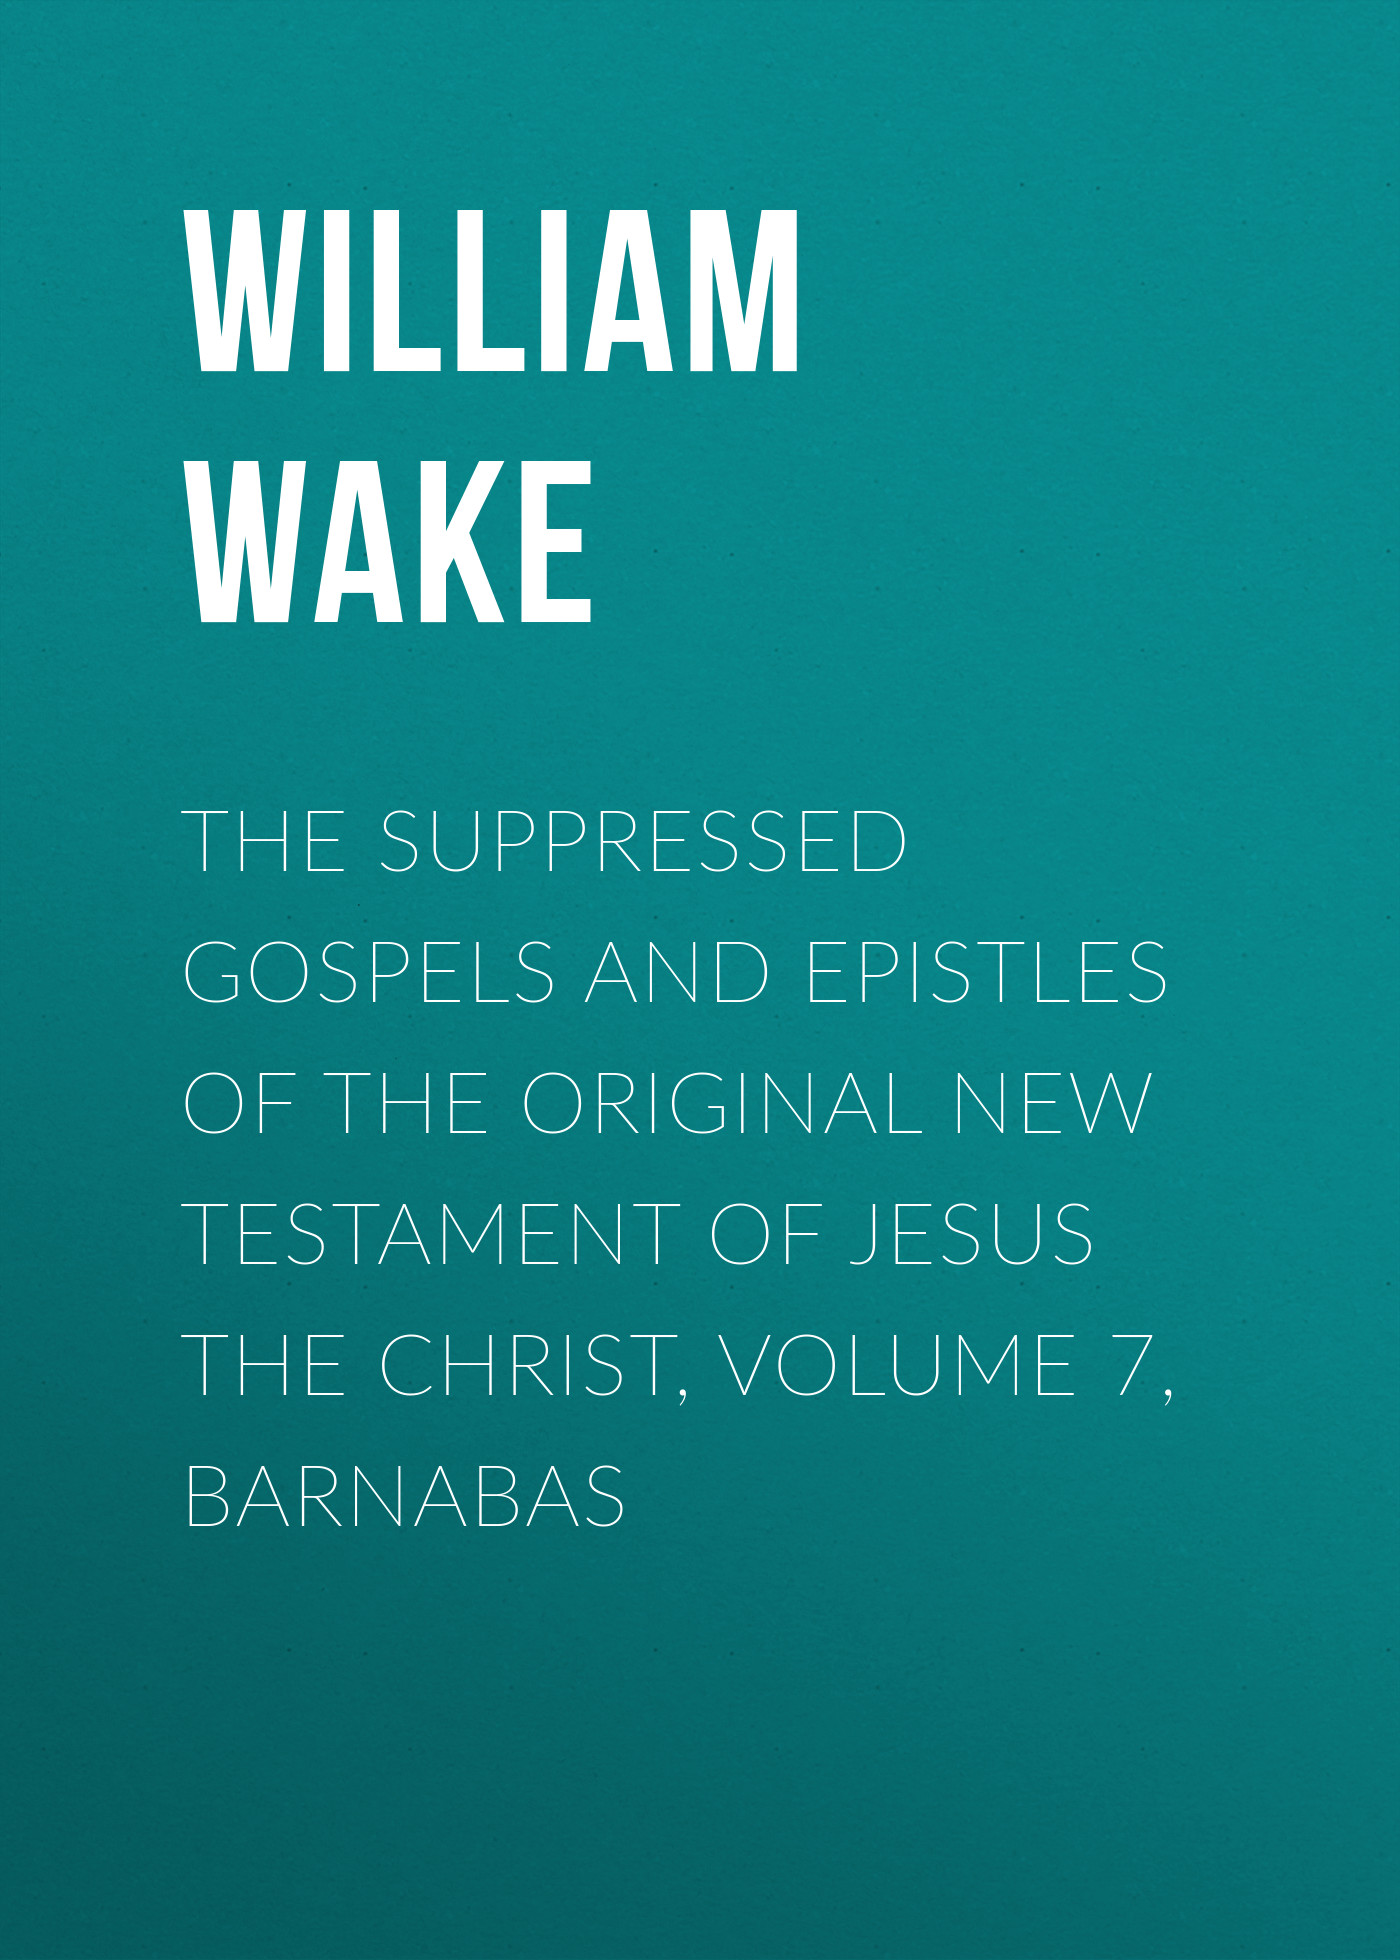 William Wake The suppressed Gospels and Epistles of the original New Testament of Jesus the Christ, Volume 7, Barnabas william wake the suppressed gospels and epistles of the original new testament of jesus the christ volume 3 infancy of jesus christ page 8 page 6